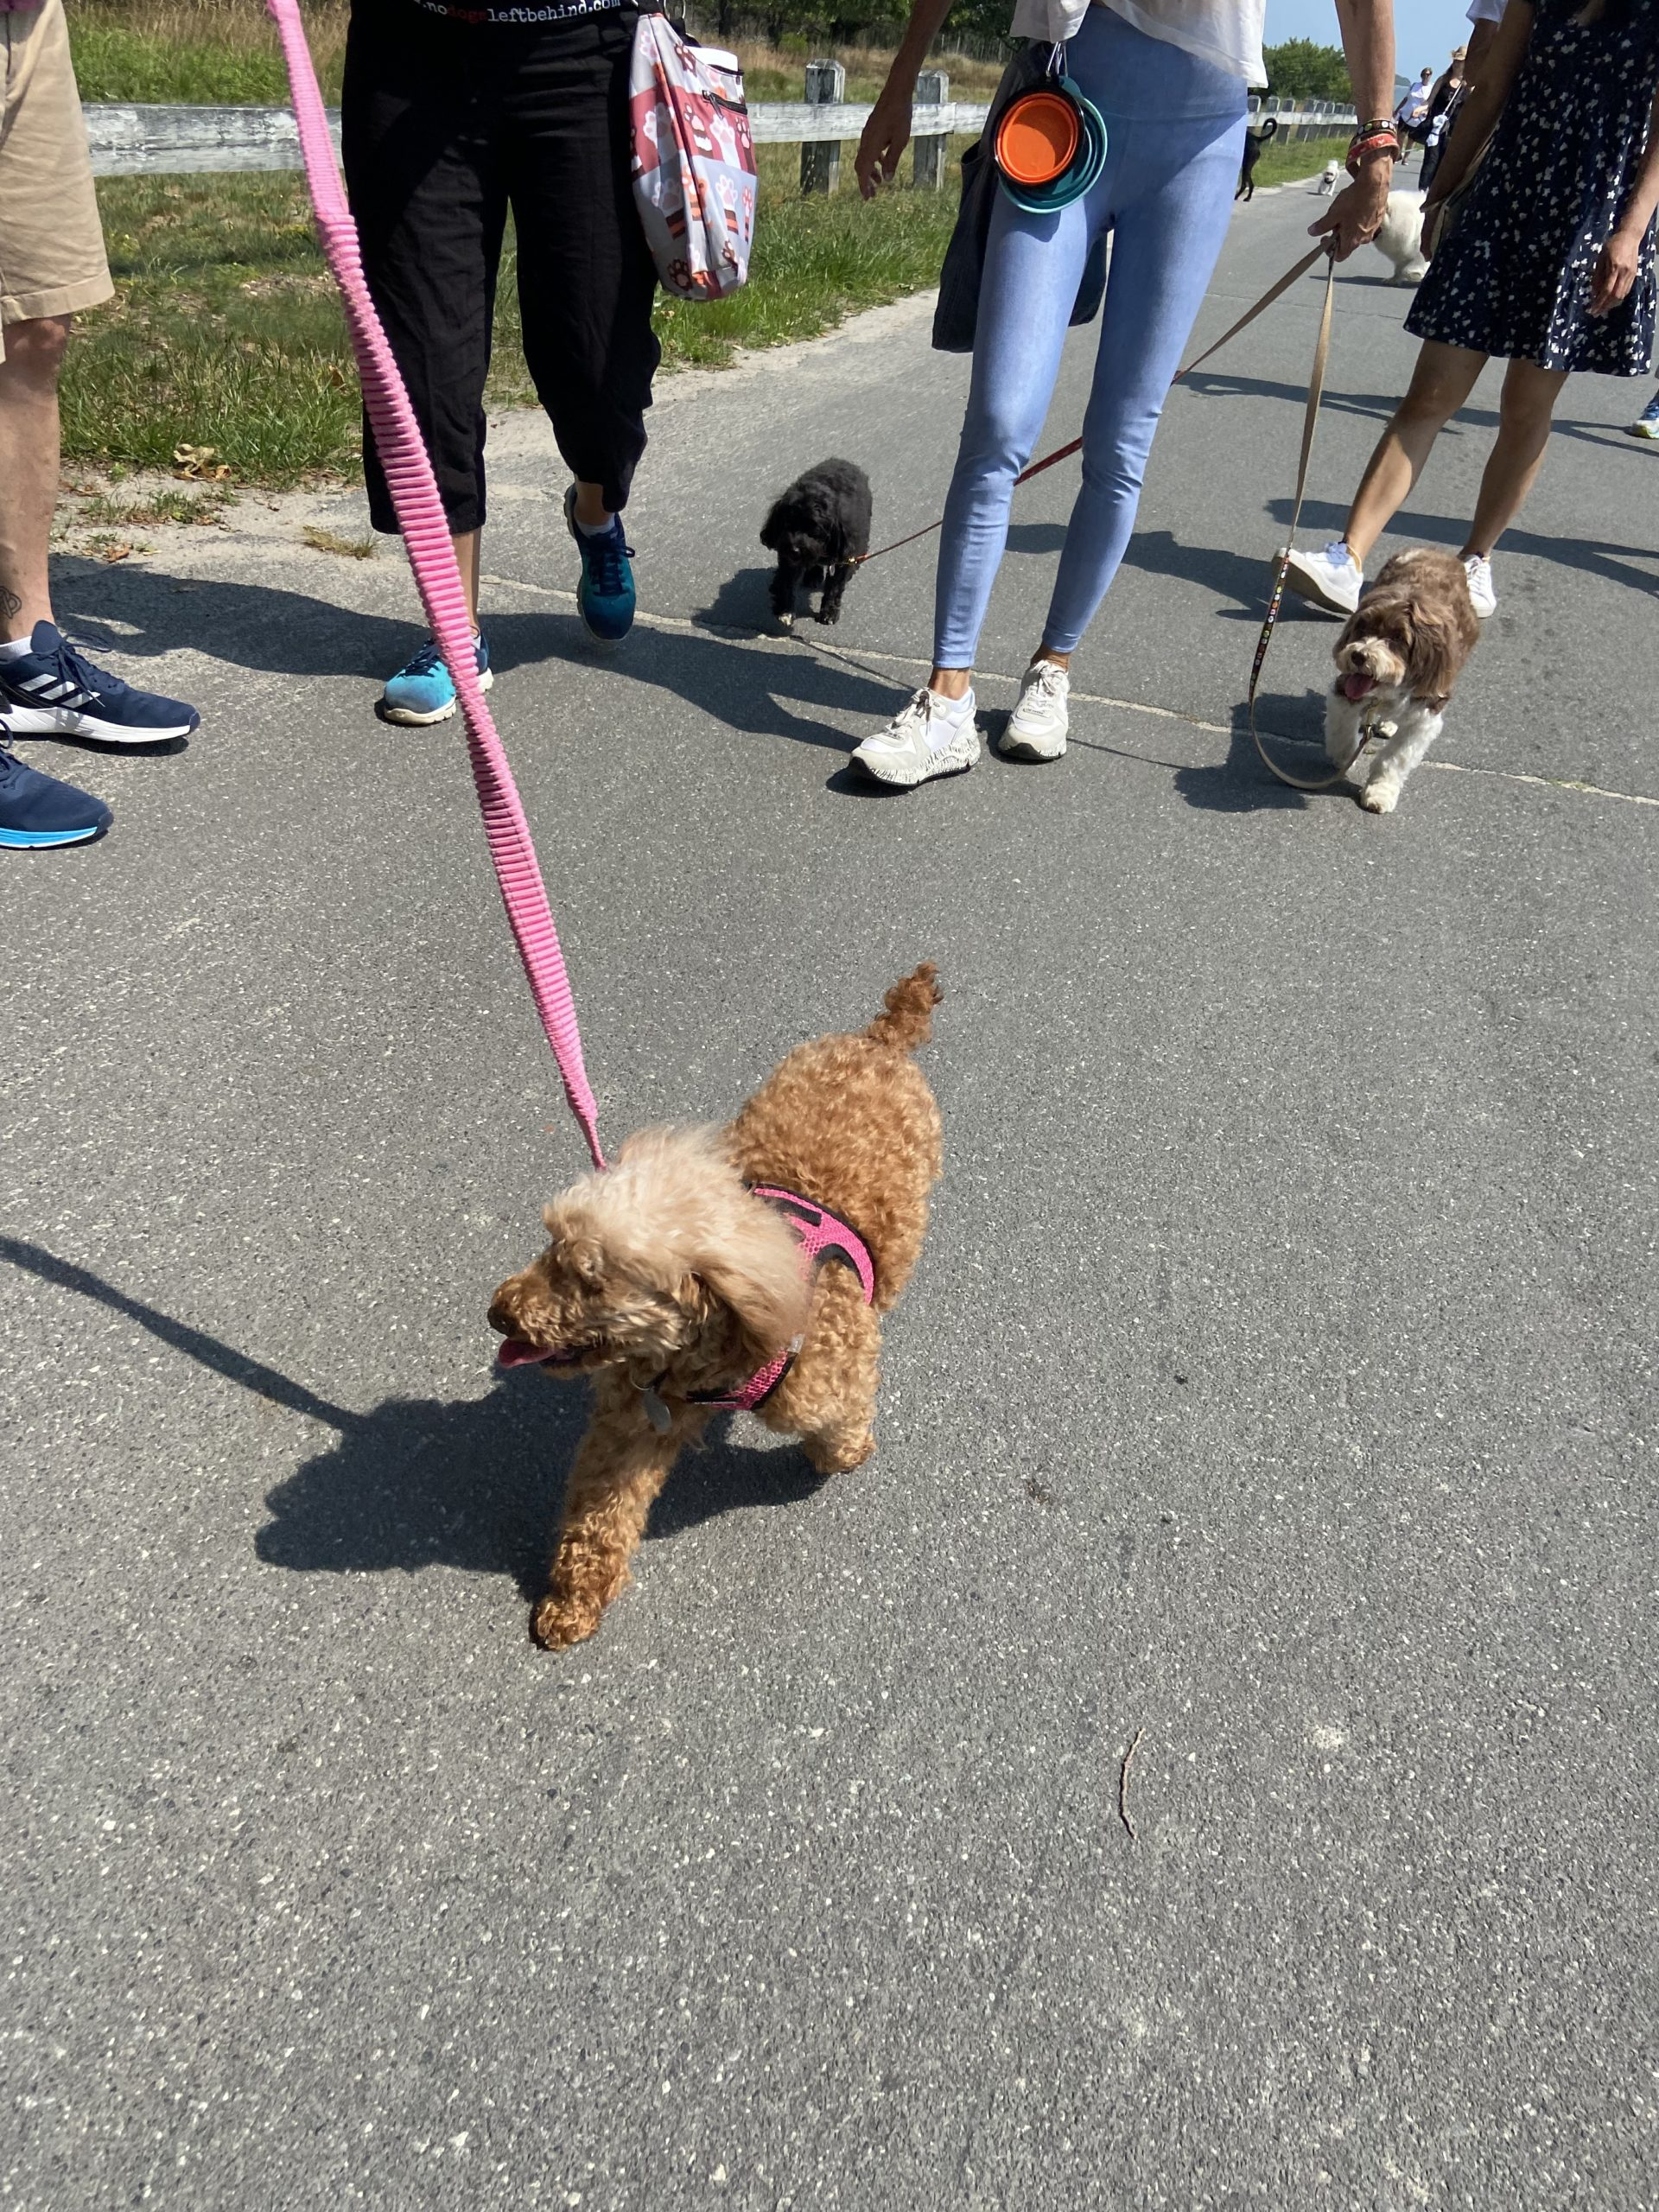 Tulip, who was rescued from China by No Dogs Left Behind, joins the walk